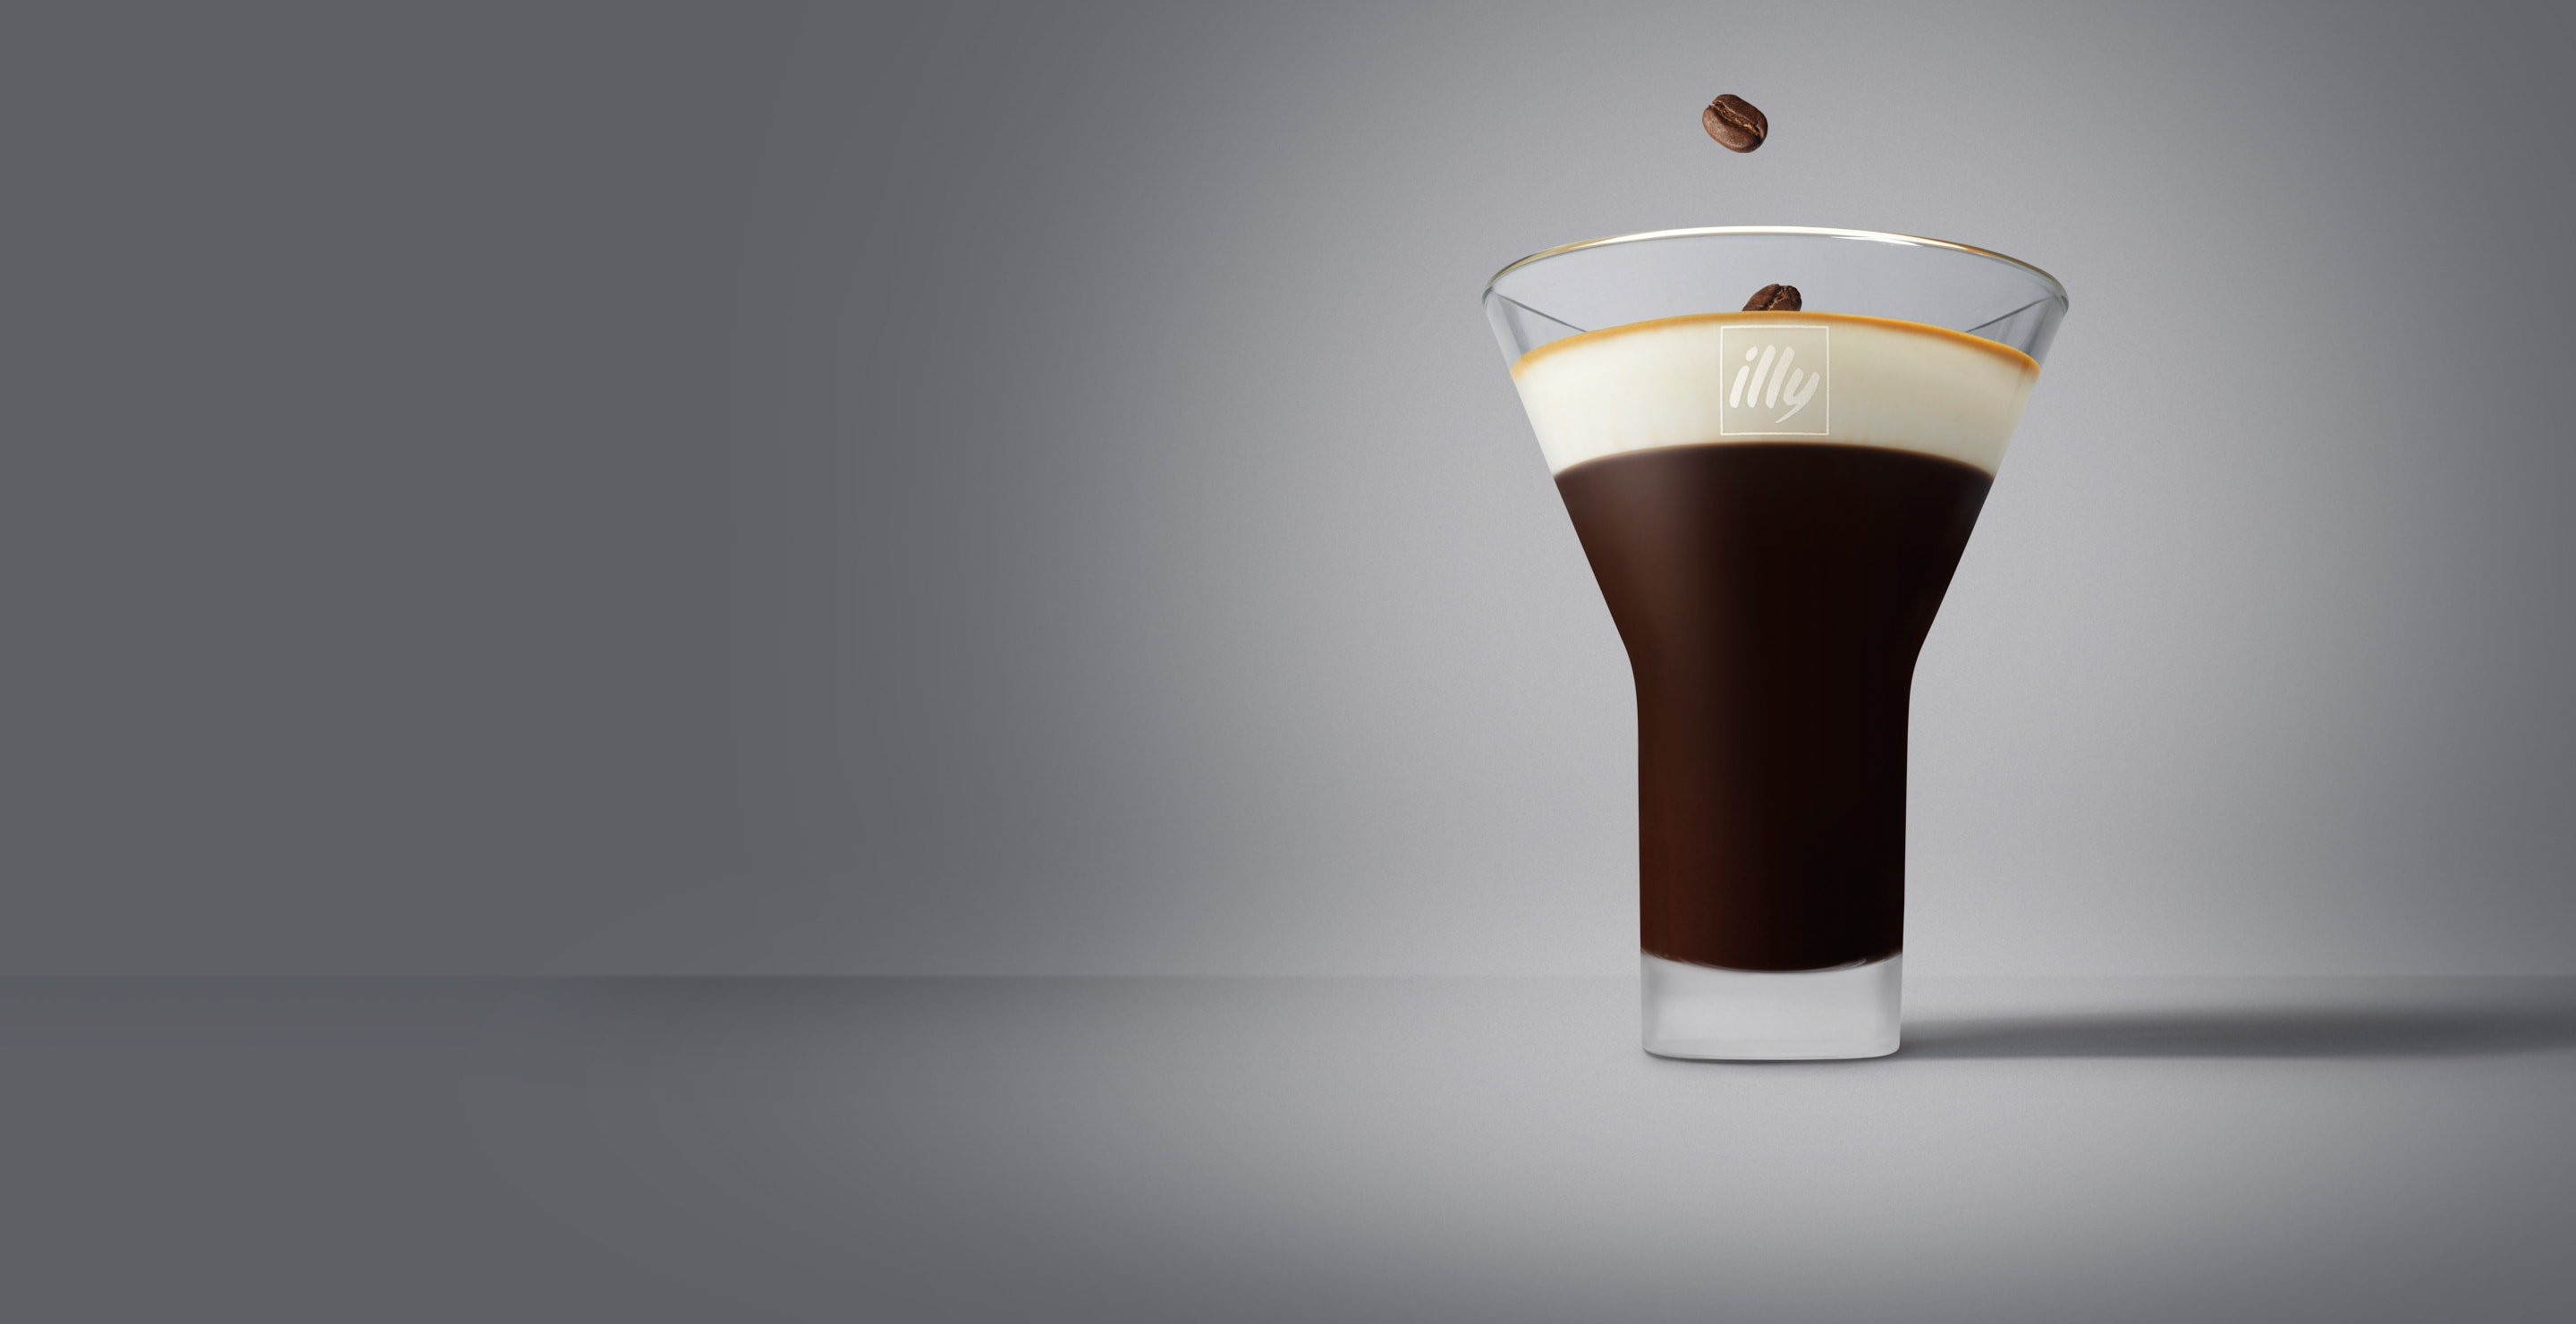 Irish coffee illy